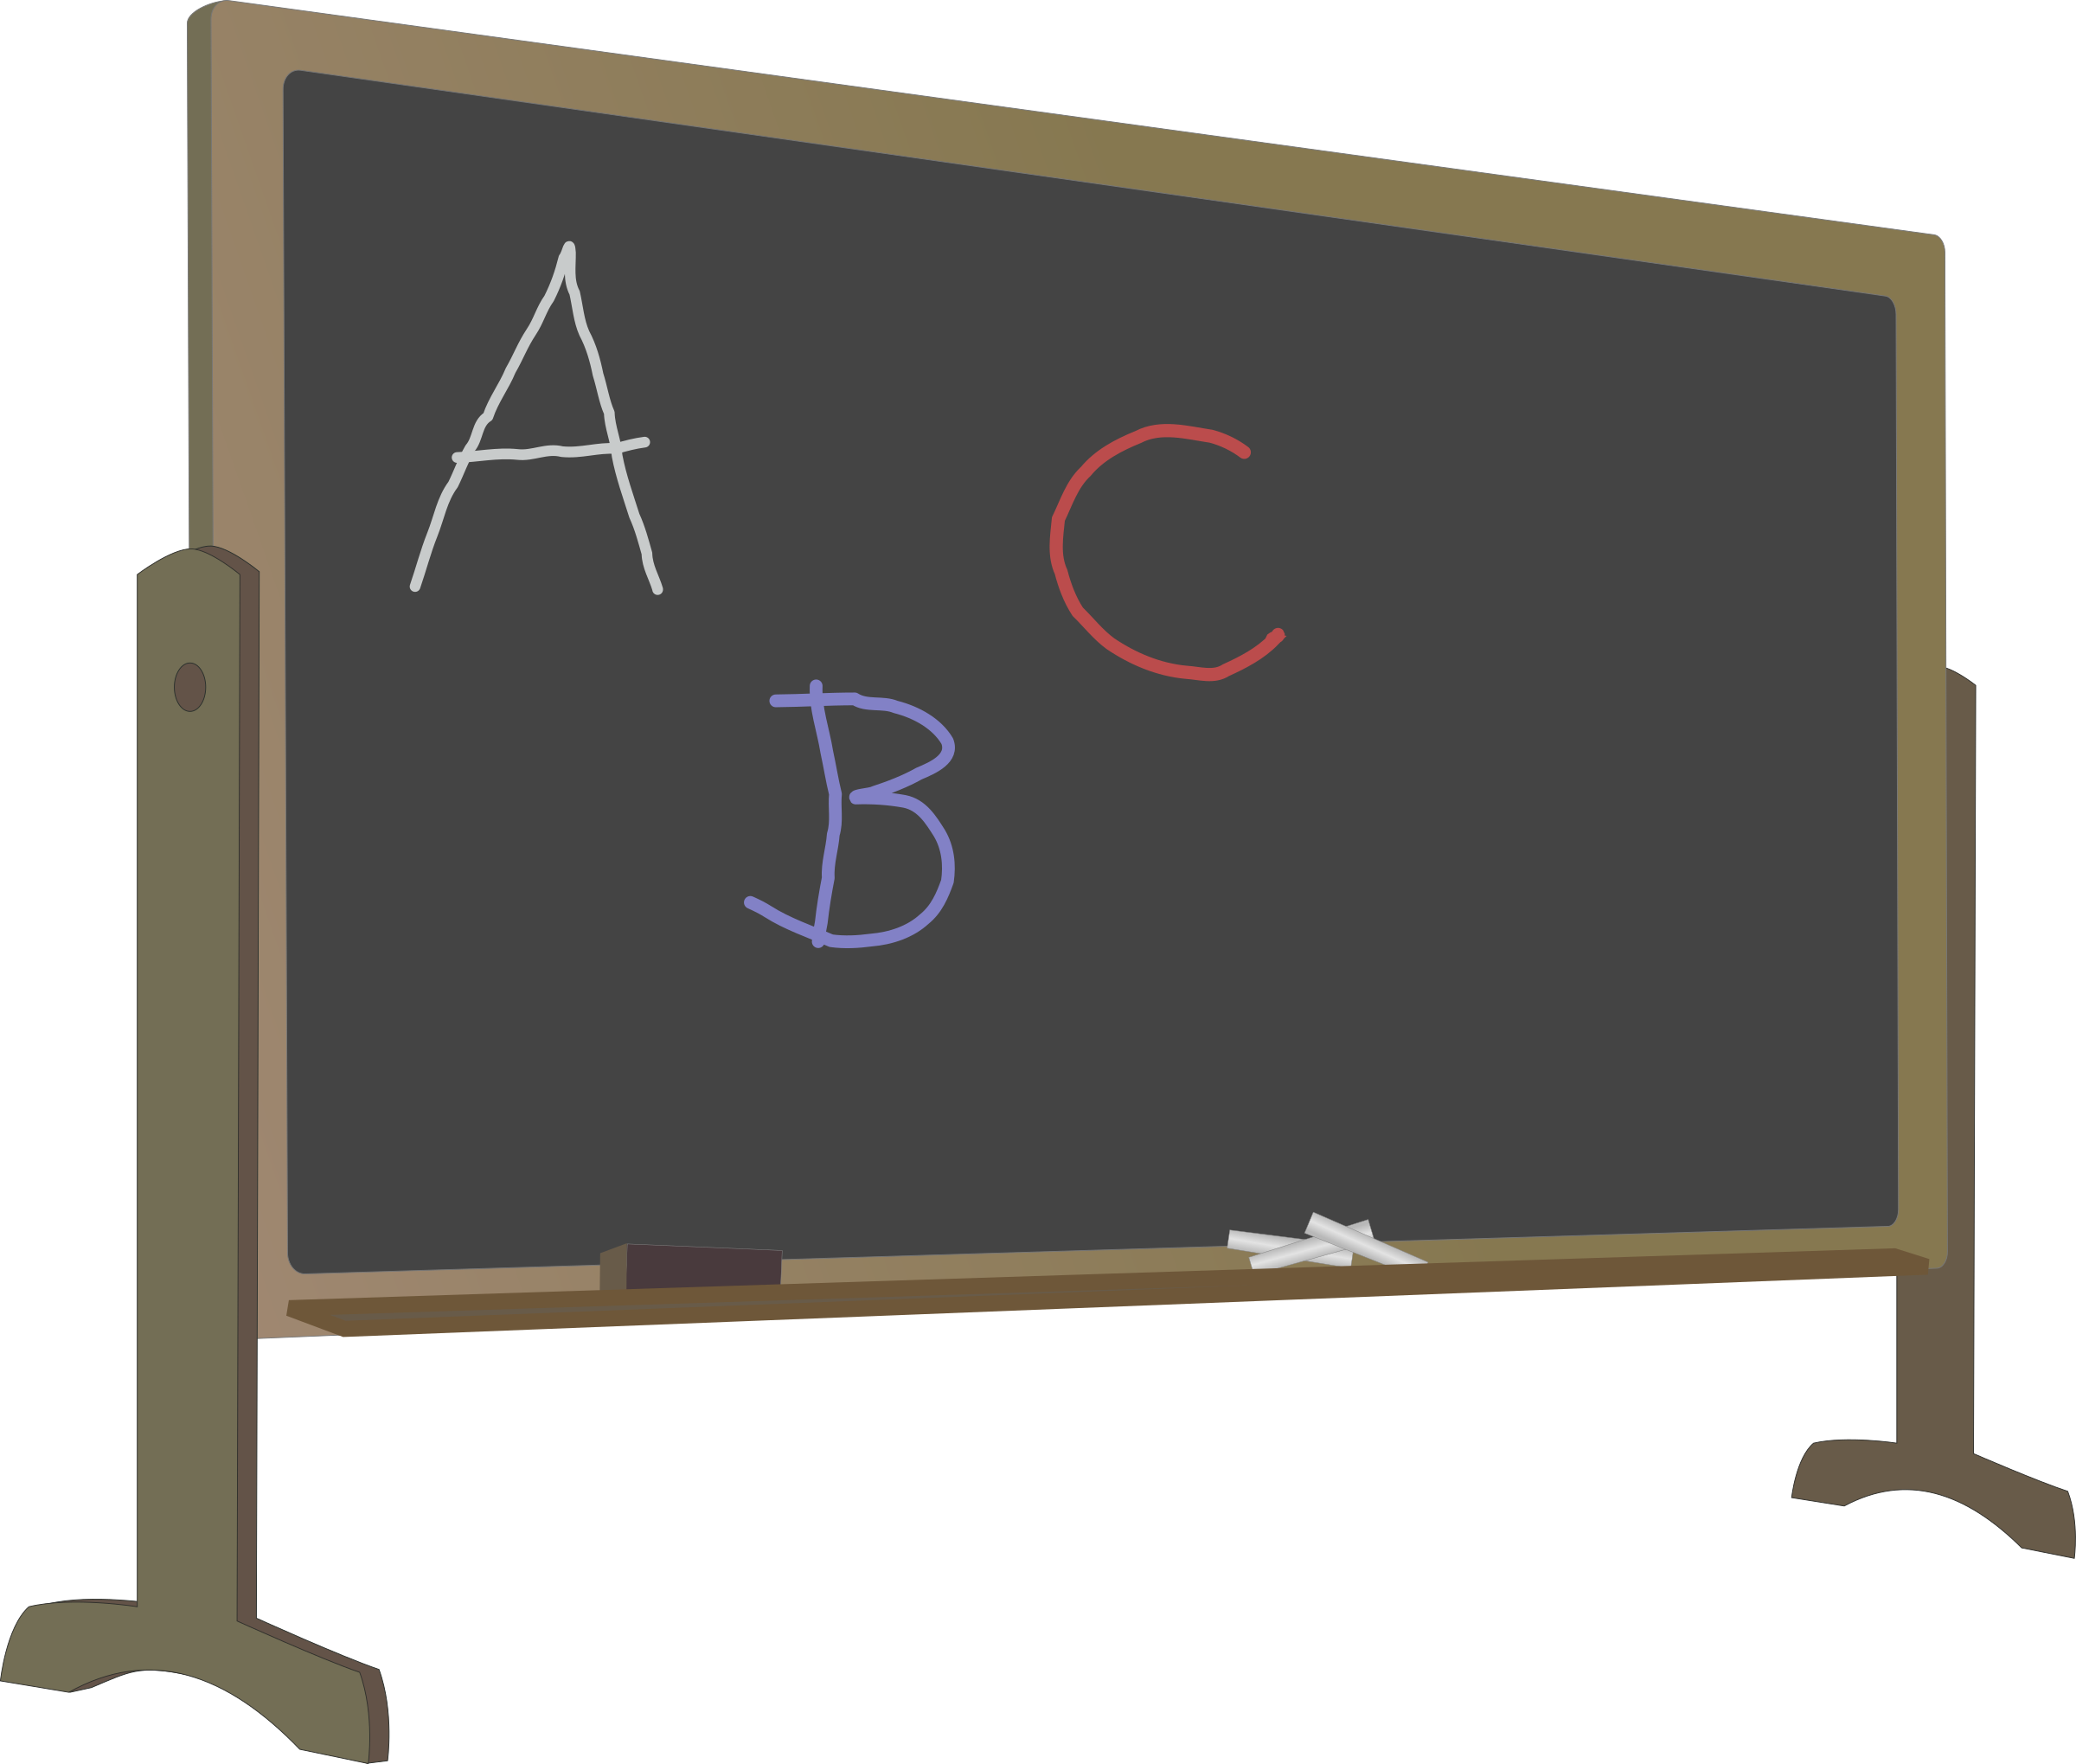 Clipart science chalkboard. Blackboard with stand and